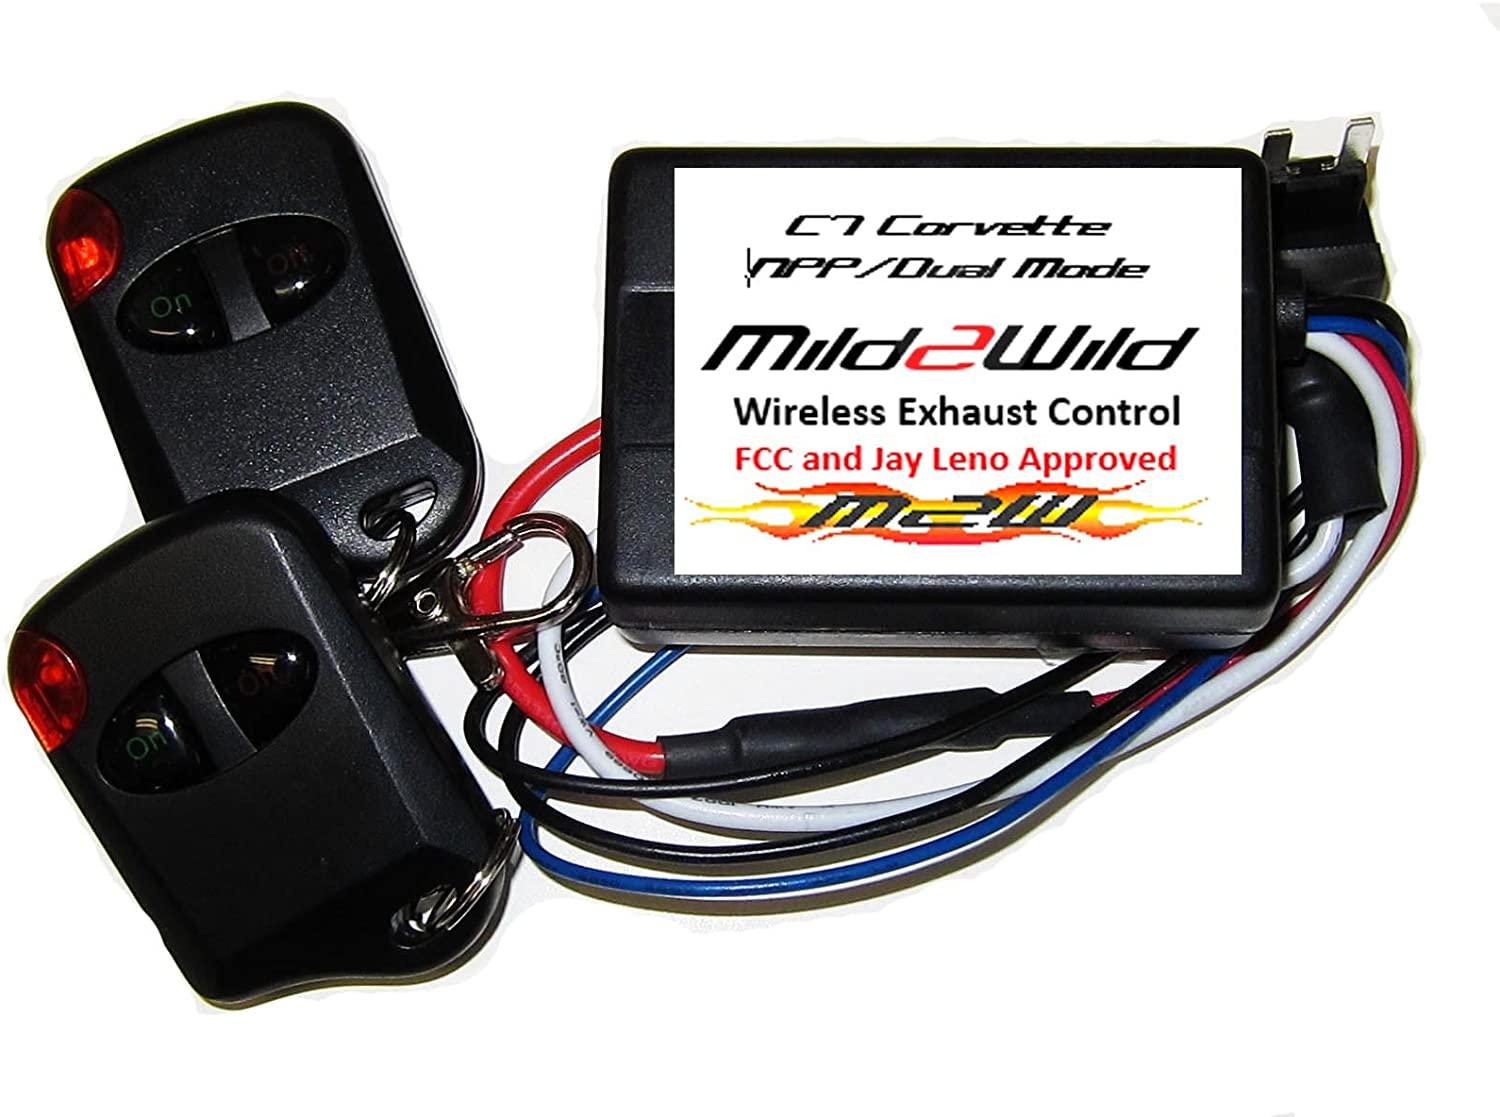 Mild 2 Wild Exhaust Remote C7 Corvette 2014-2019